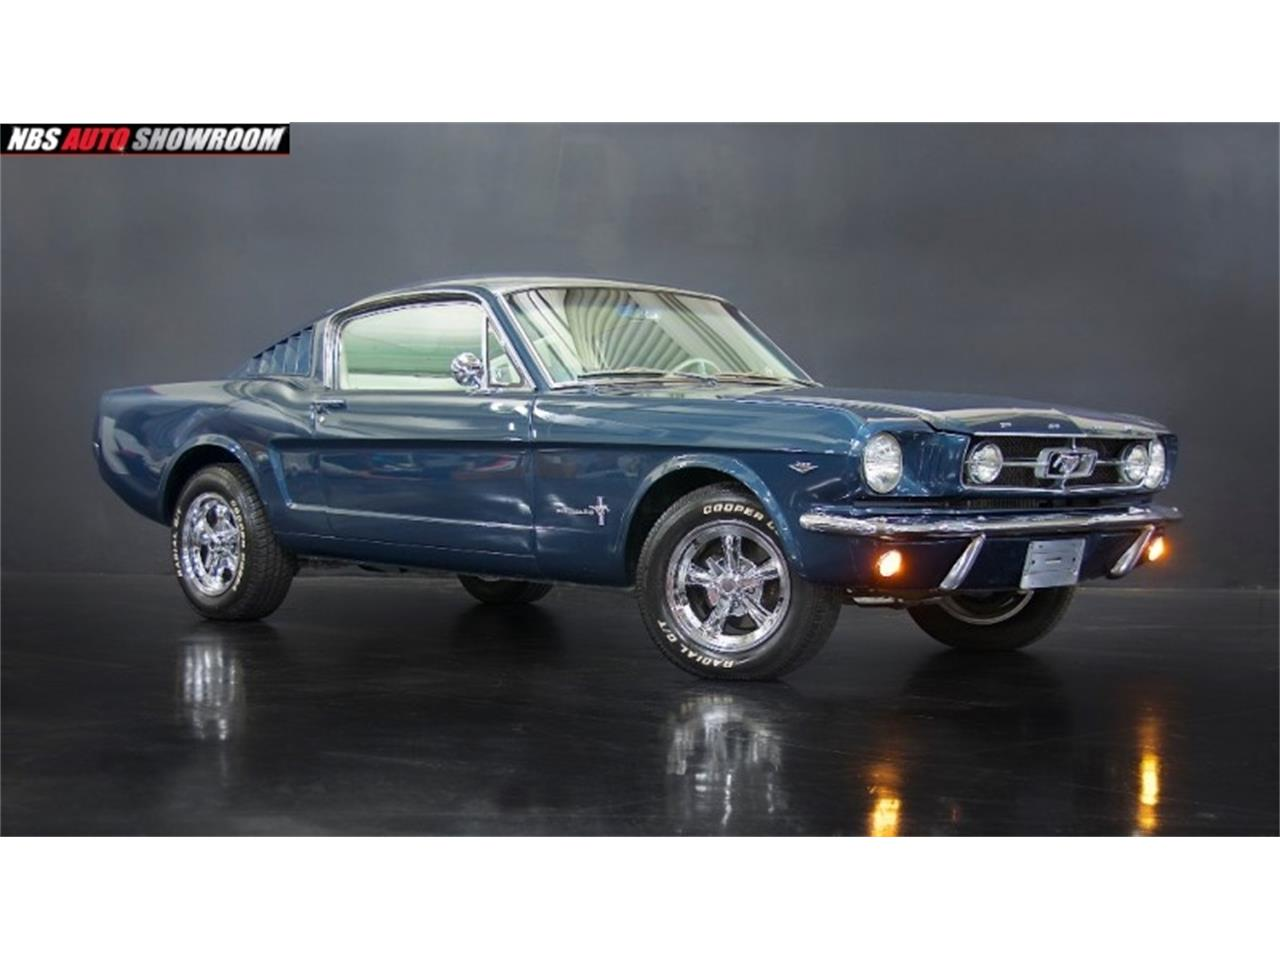 Large Picture of Classic 1965 Mustang located in California - $37,074.00 Offered by NBS Auto Showroom - PHR5